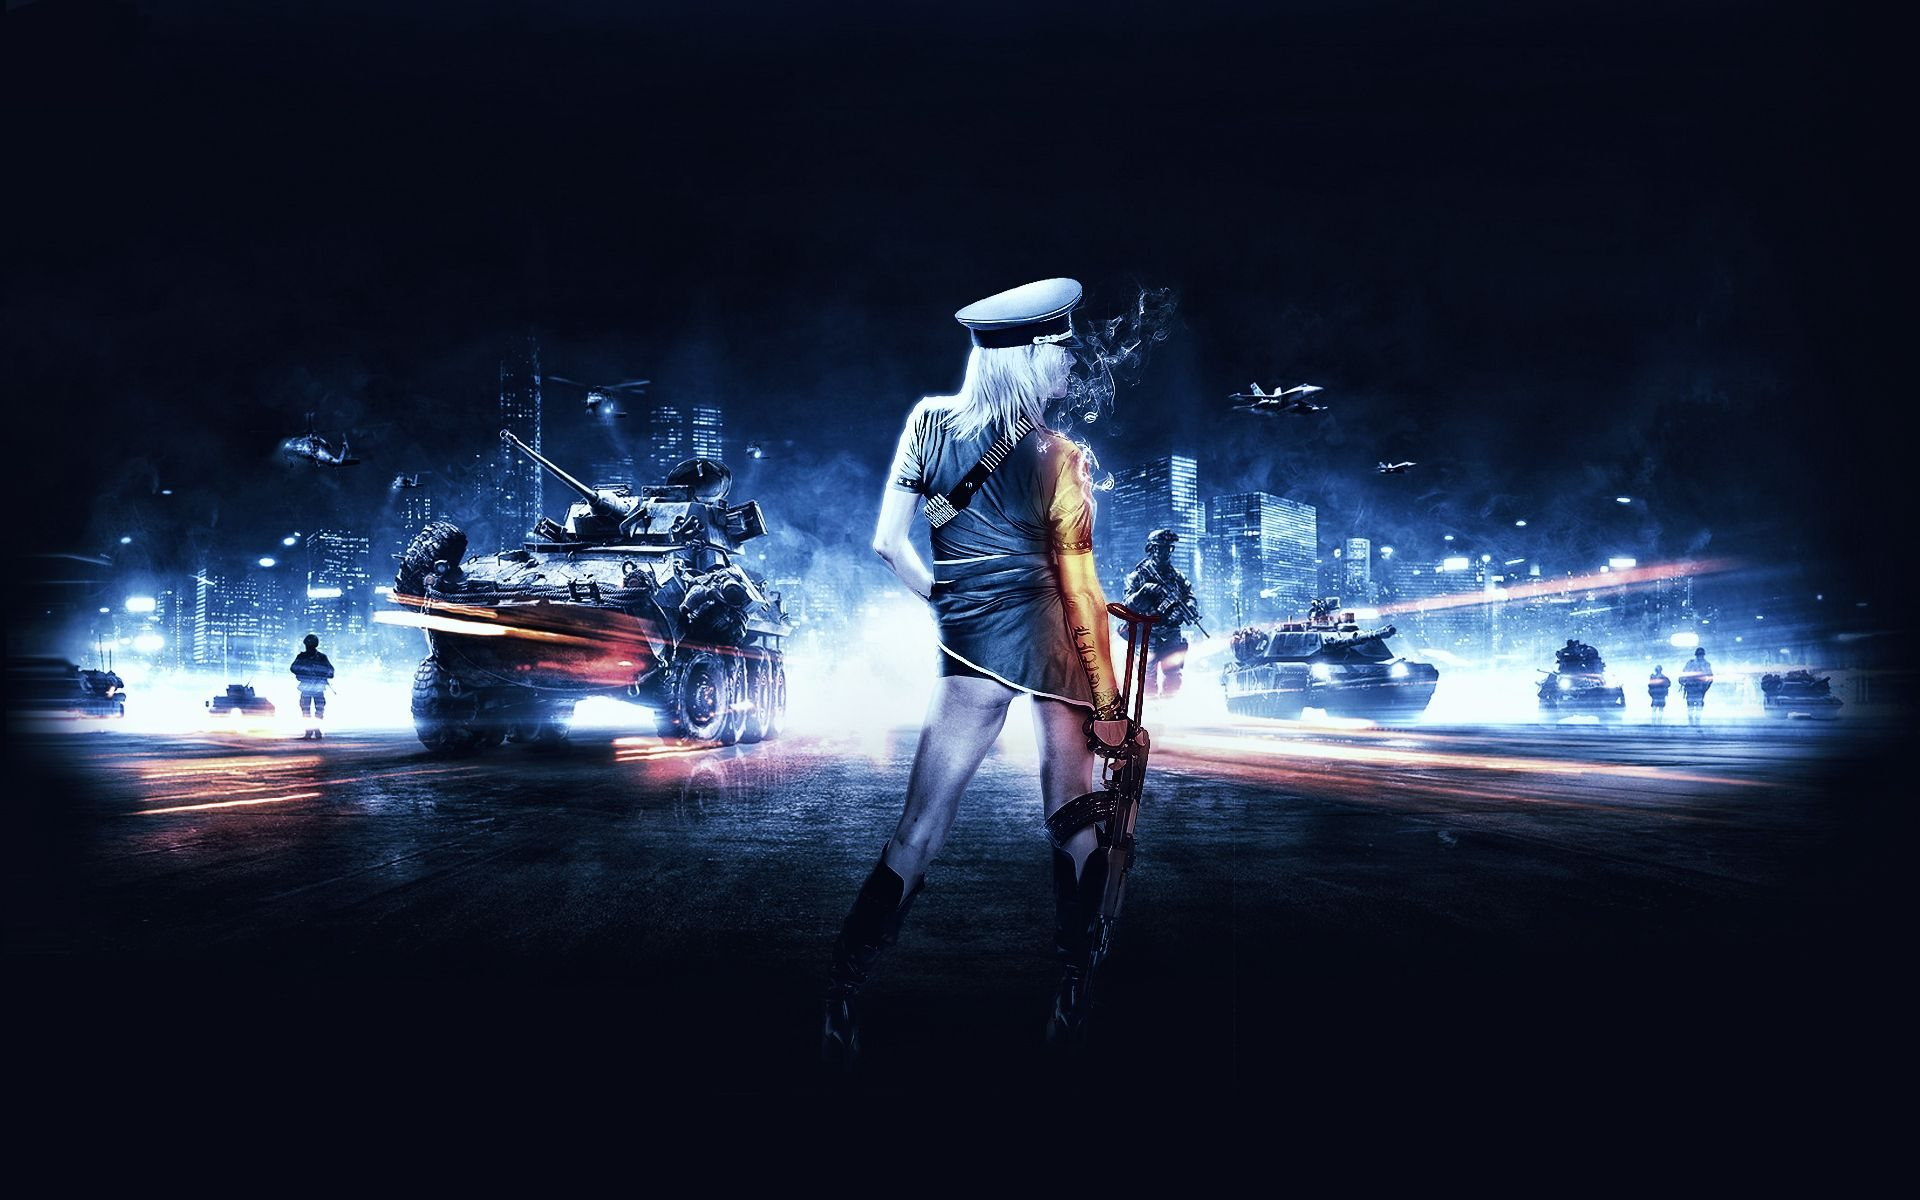 Battlefield 3 soldier full hd desktop wallpapers 1080p - Battlefield screensaver ...